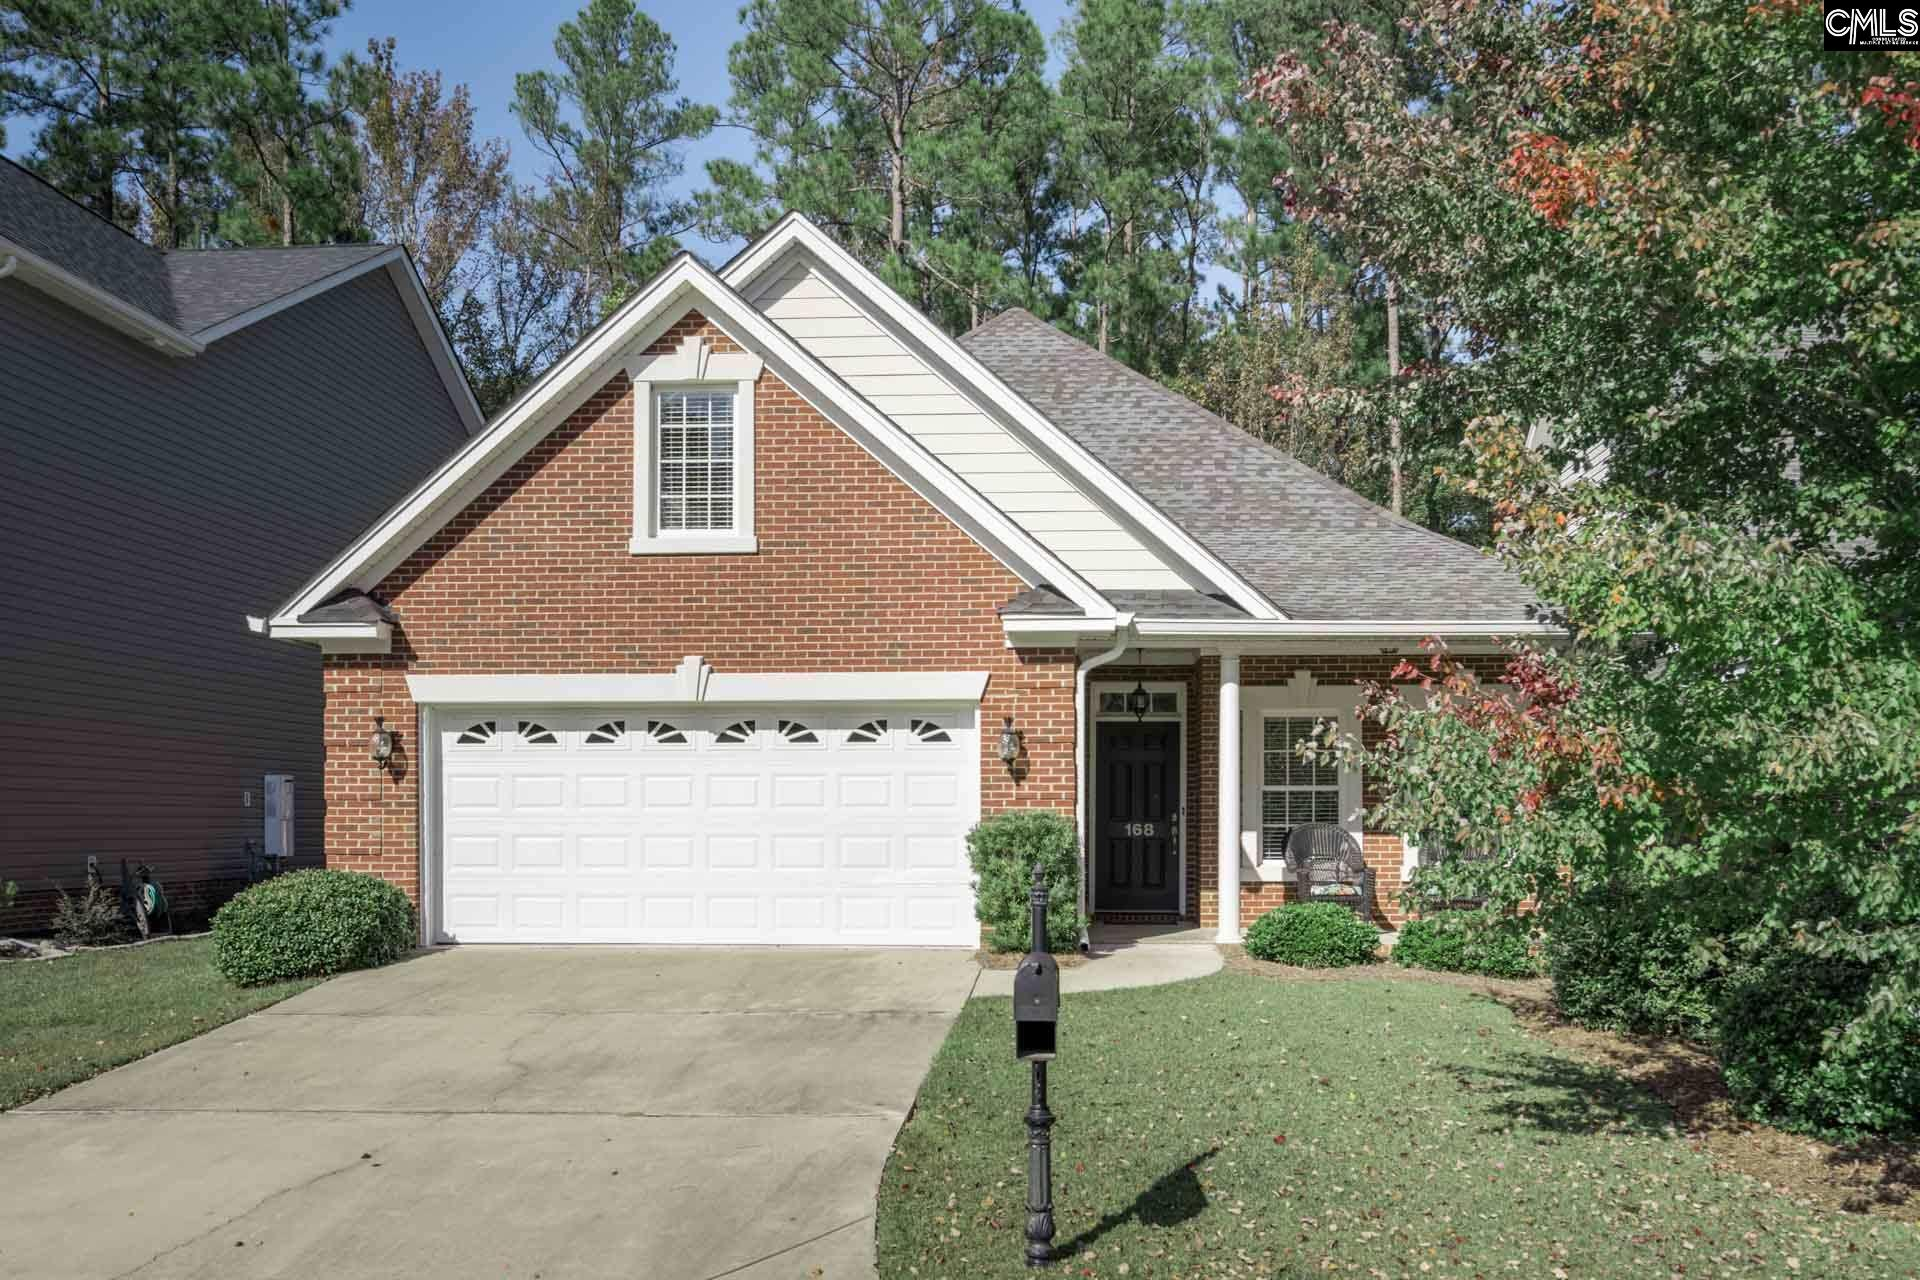 168 Marissa Lexington, SC 29072